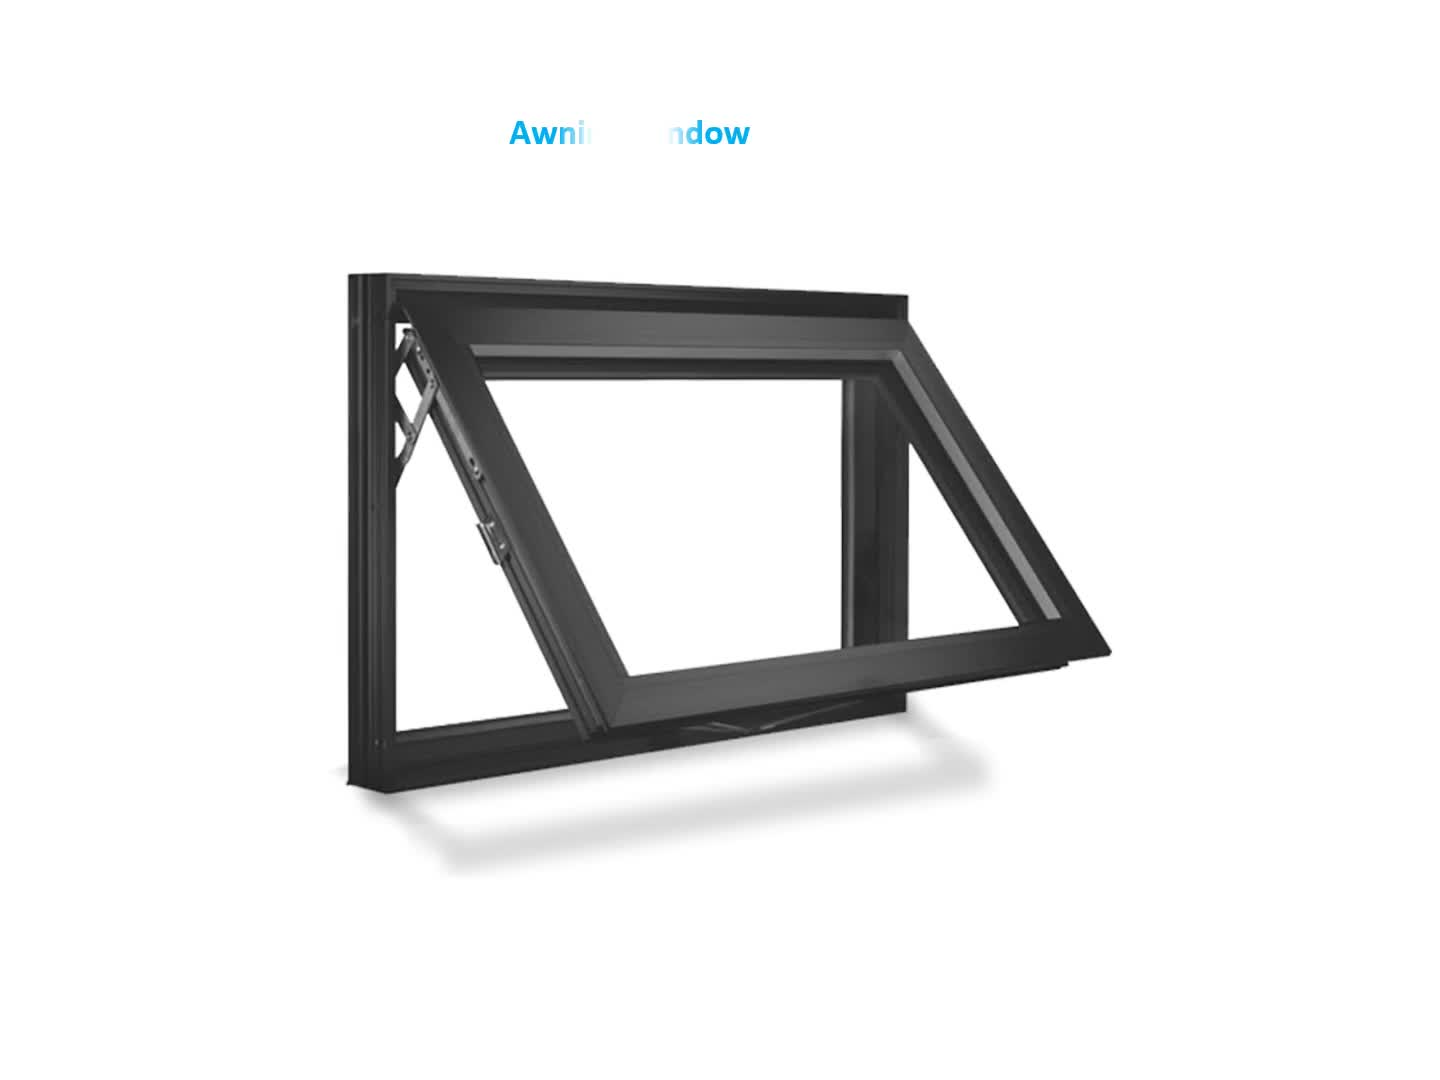 Custom Frosted Glass Awning Window Personalized Small Awning Windows For Sale